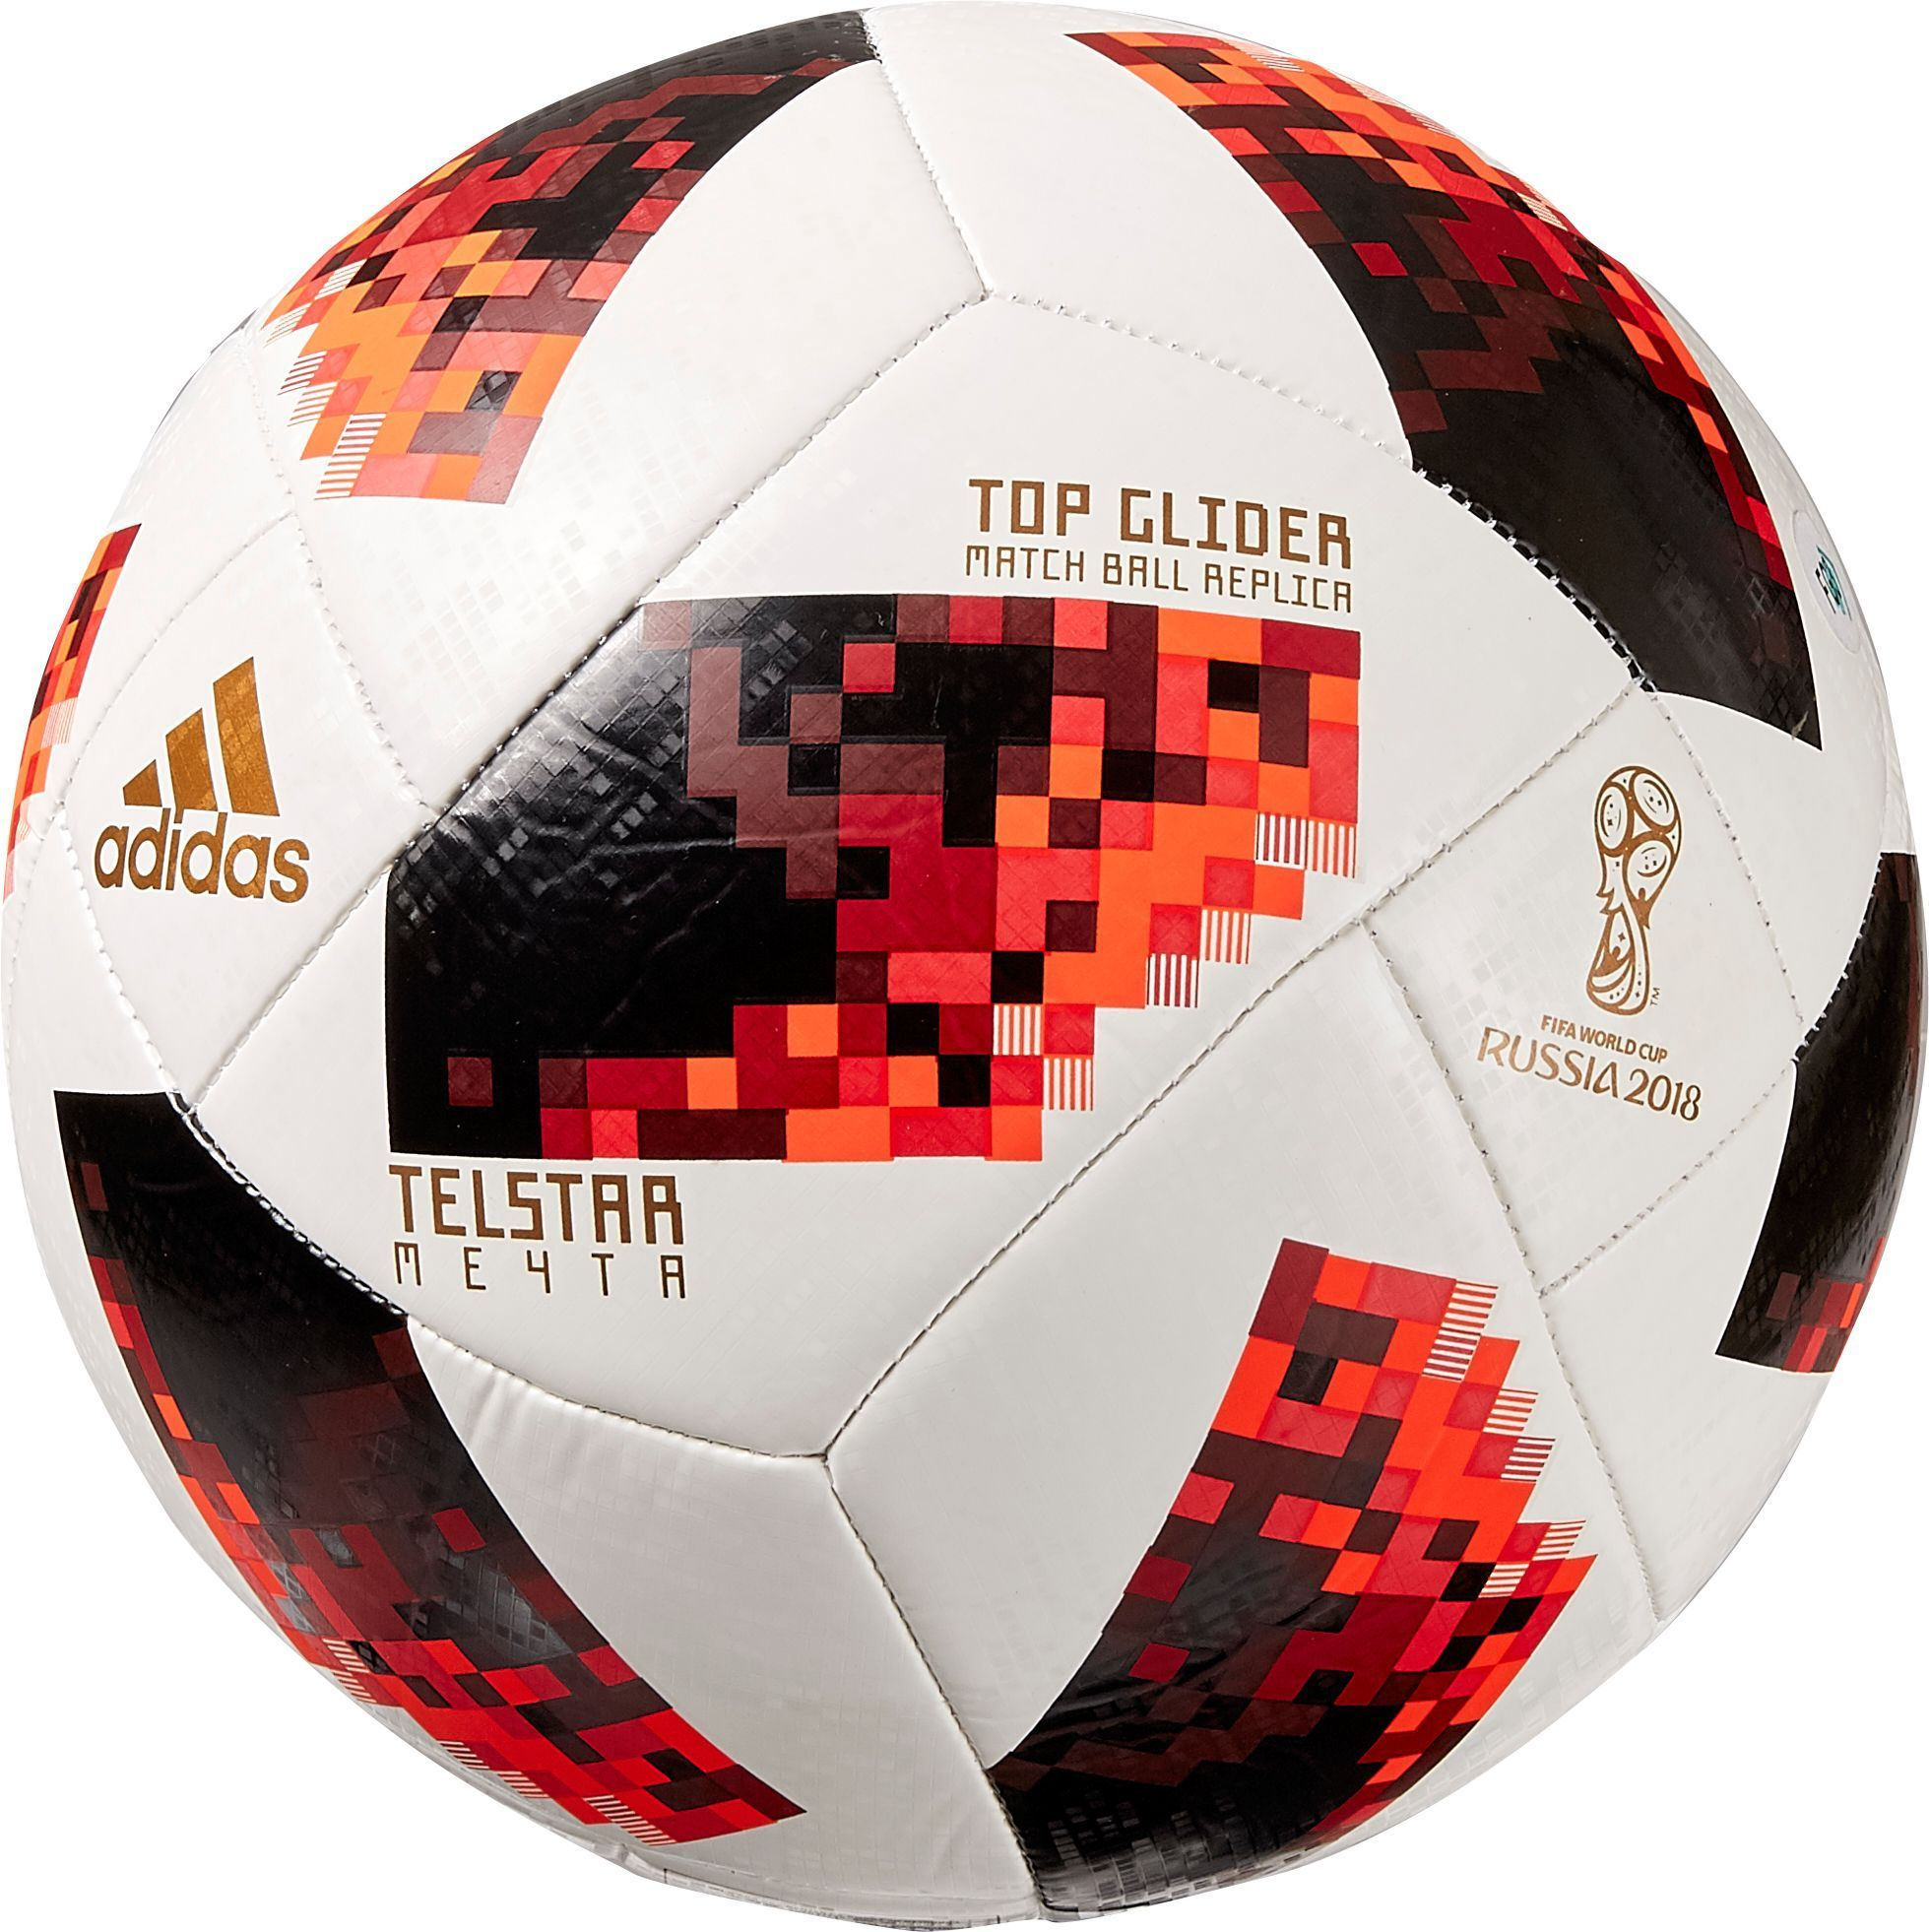 Adidas World Cup 2018 Football In 2020 Soccer Ball Soccer Balls World Cup